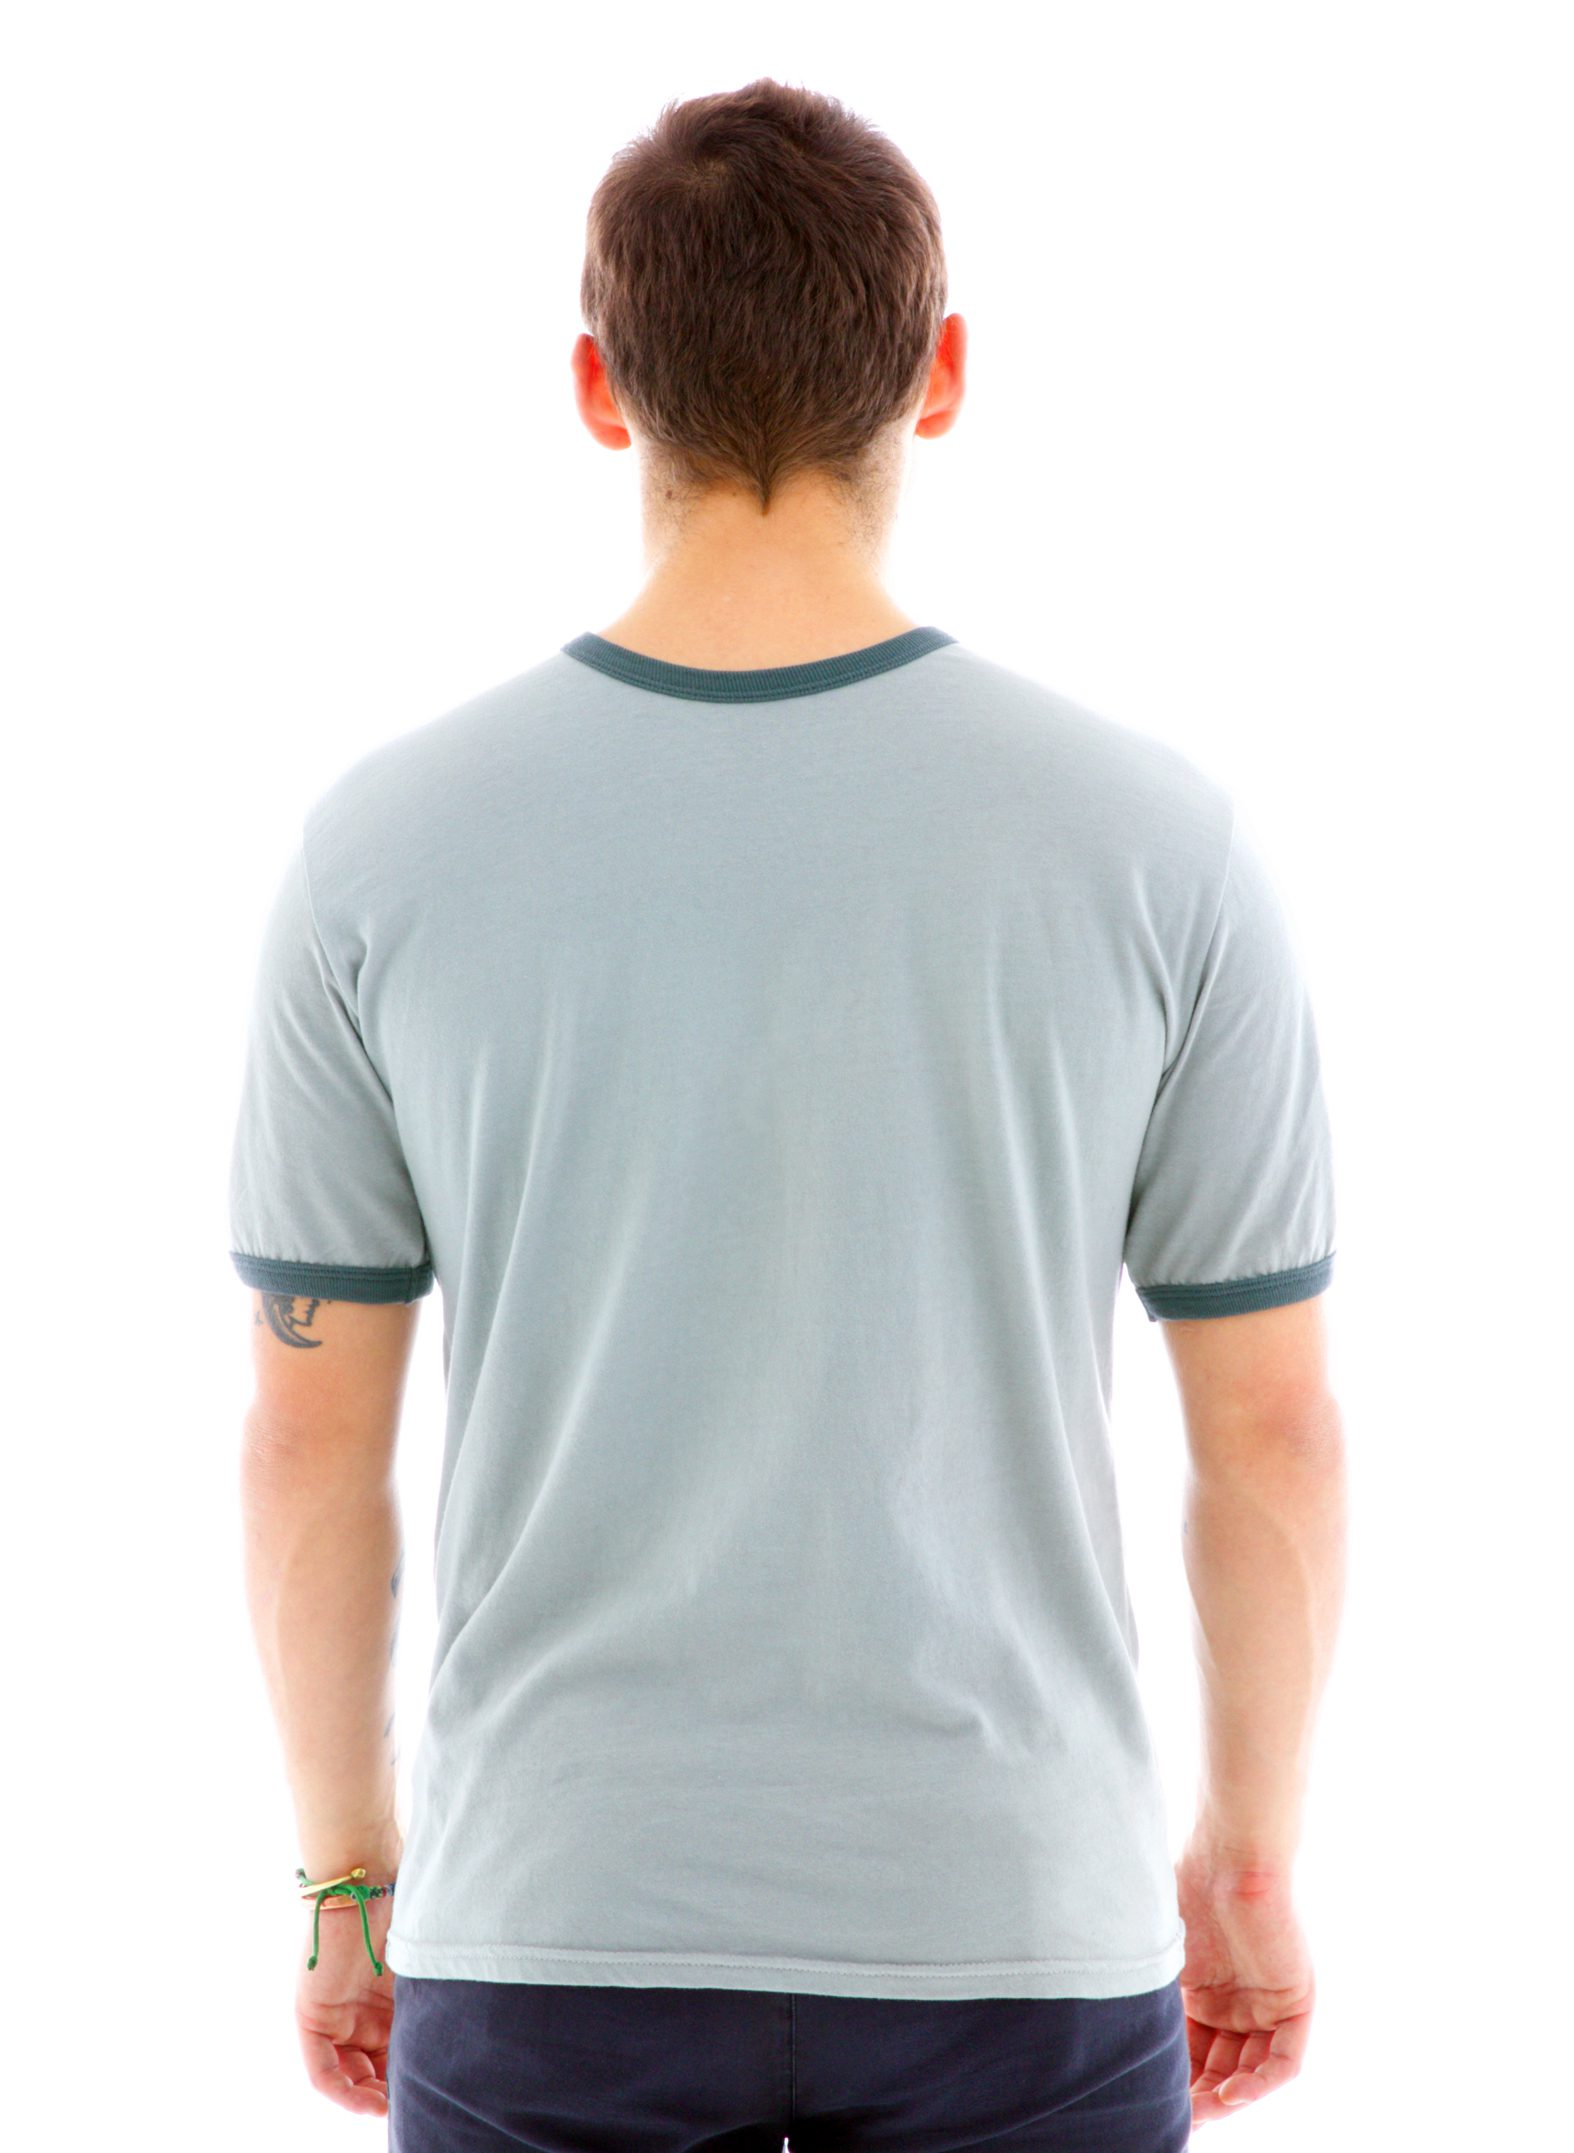 Ringer Crew Short Sleeve T-Shirt Back View